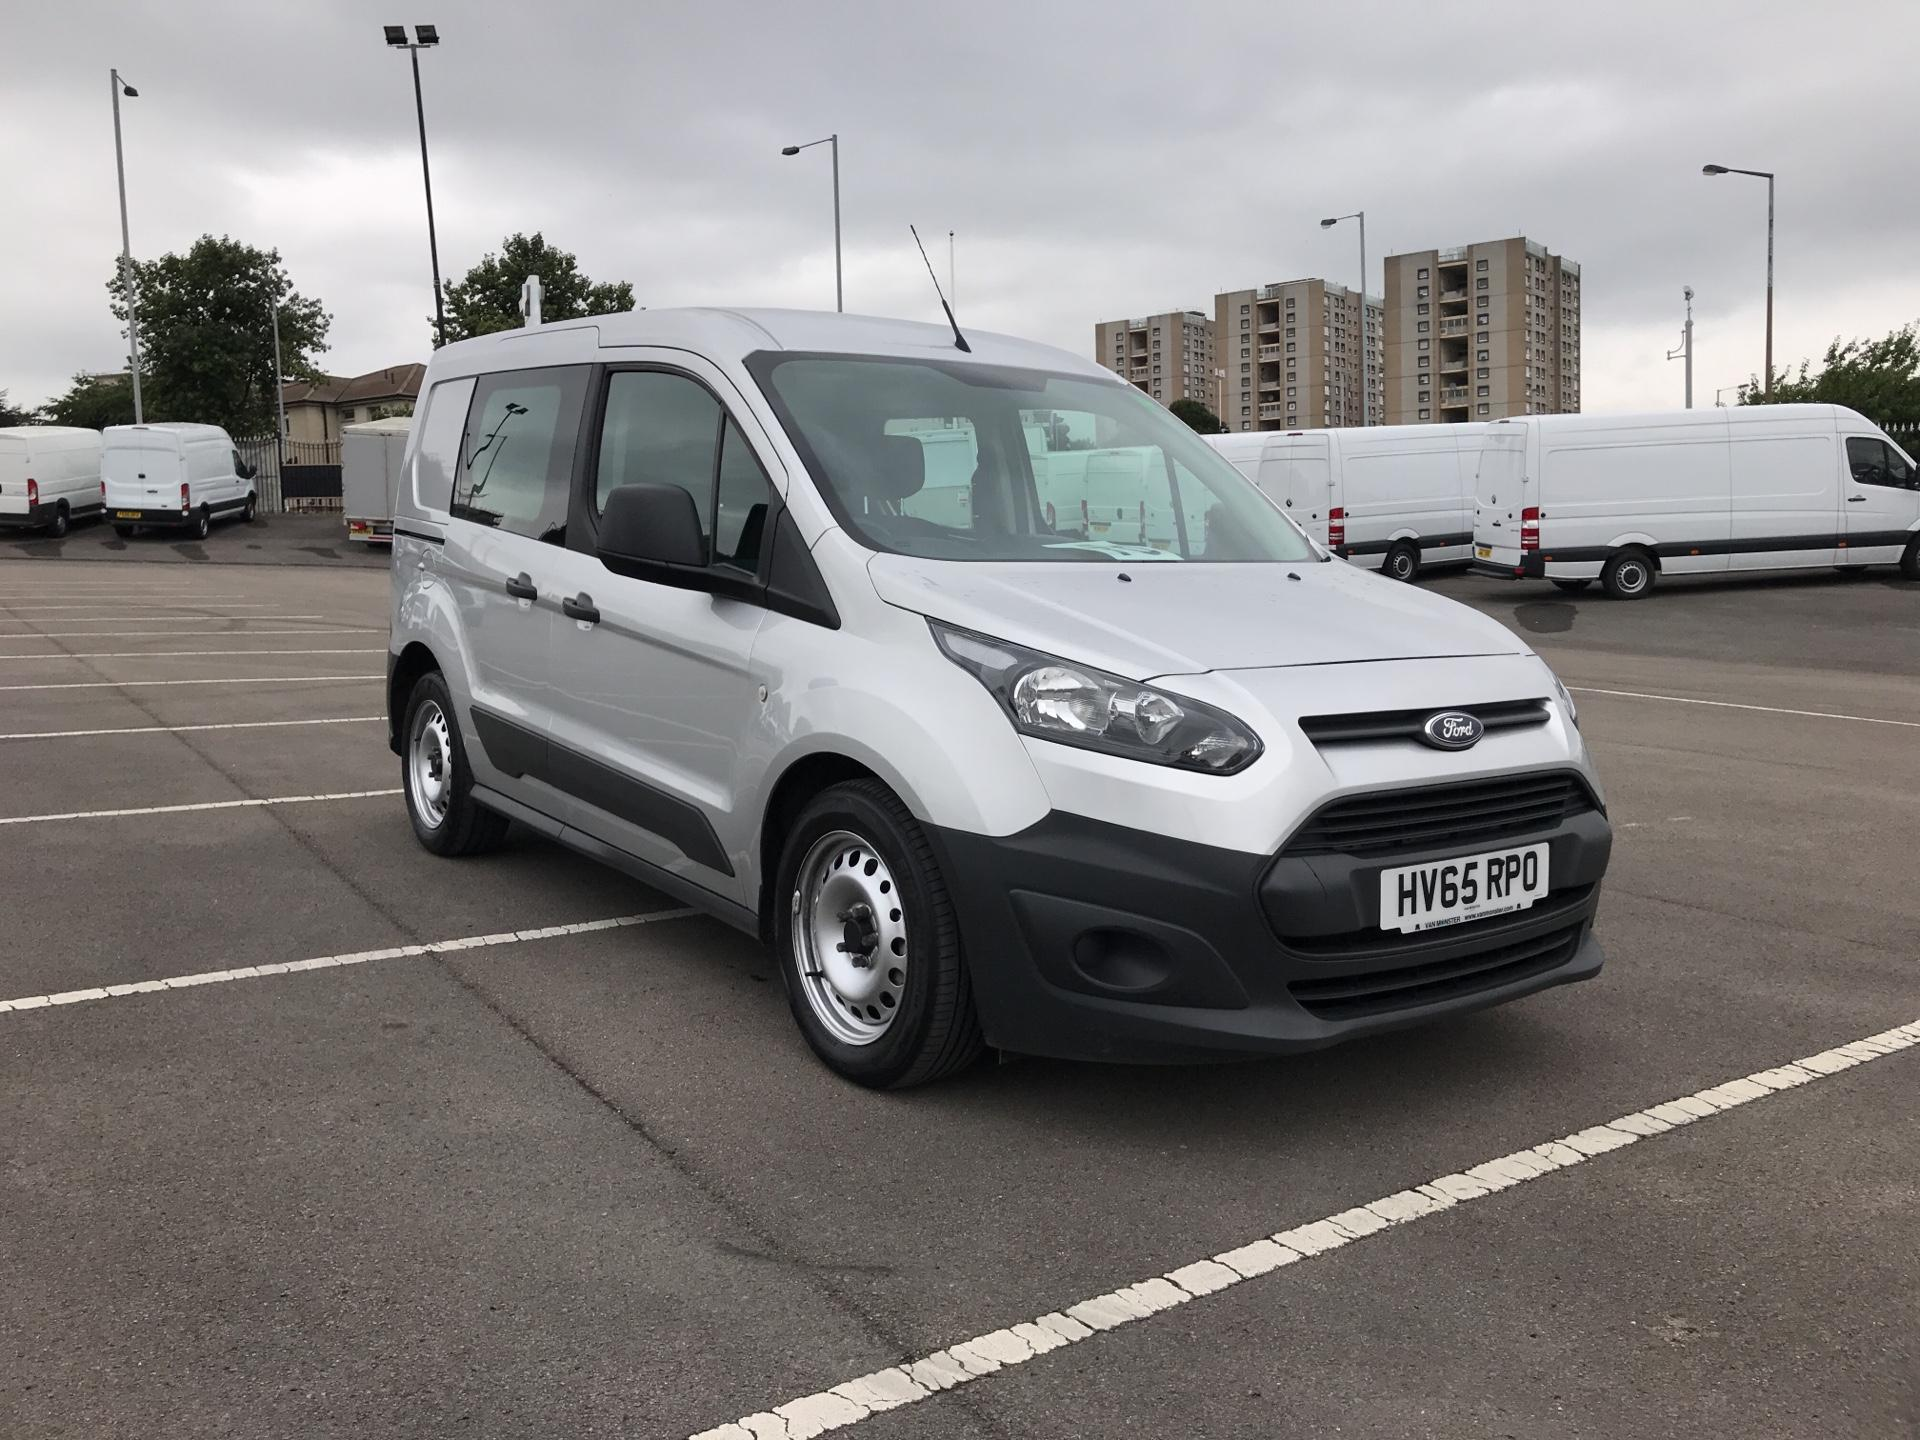 2015 Ford Transit Connect 1.6 Tdci 95Ps D/Cab Van  (HV65RPO)